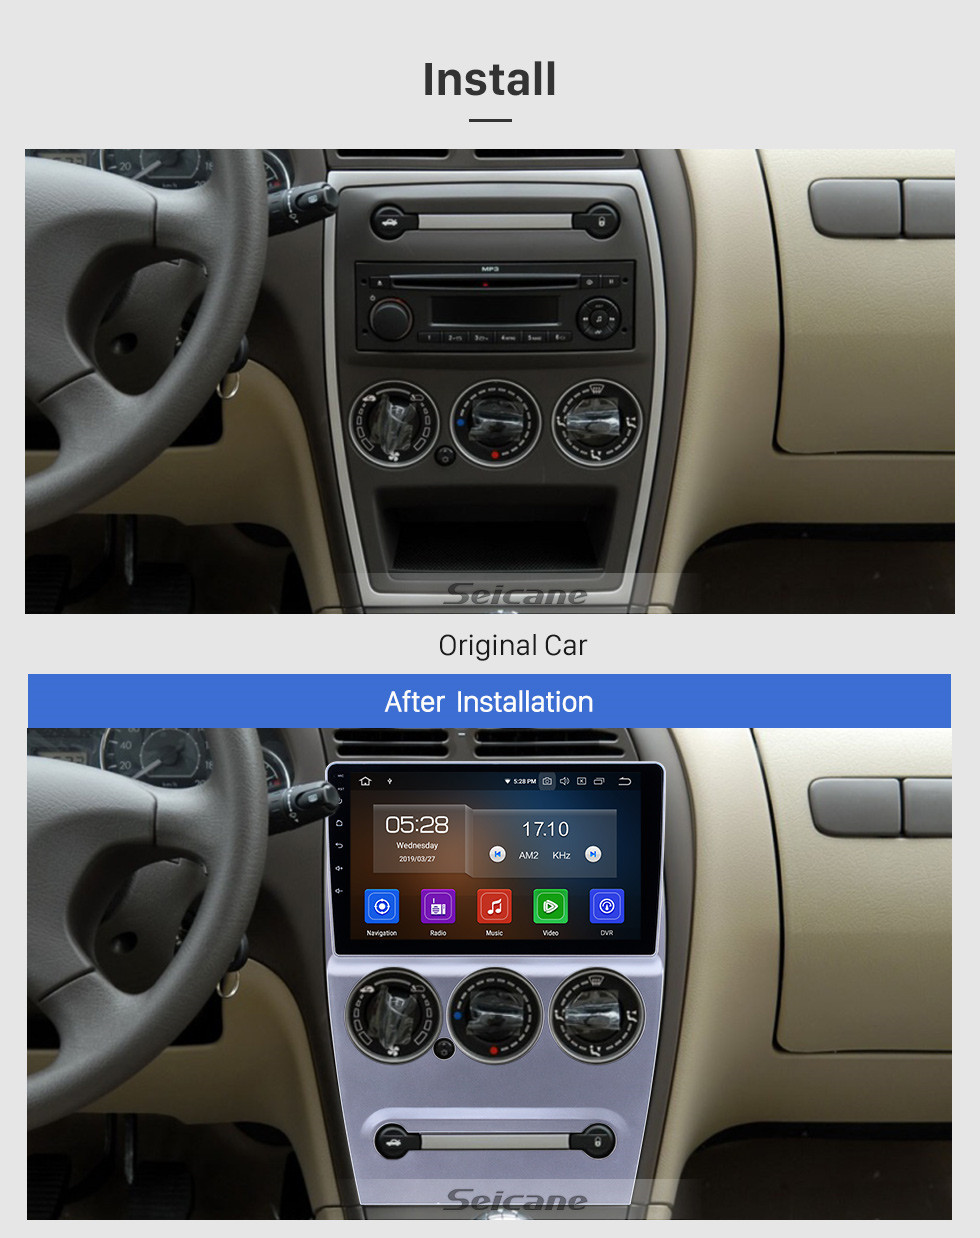 Seicane HD Touchscreen 2008-2013 Citroen Elysee Android 10.0 9 inch GPS Navigation Radio Bluetooth AUX USB Carplay support DAB+ Backup camera